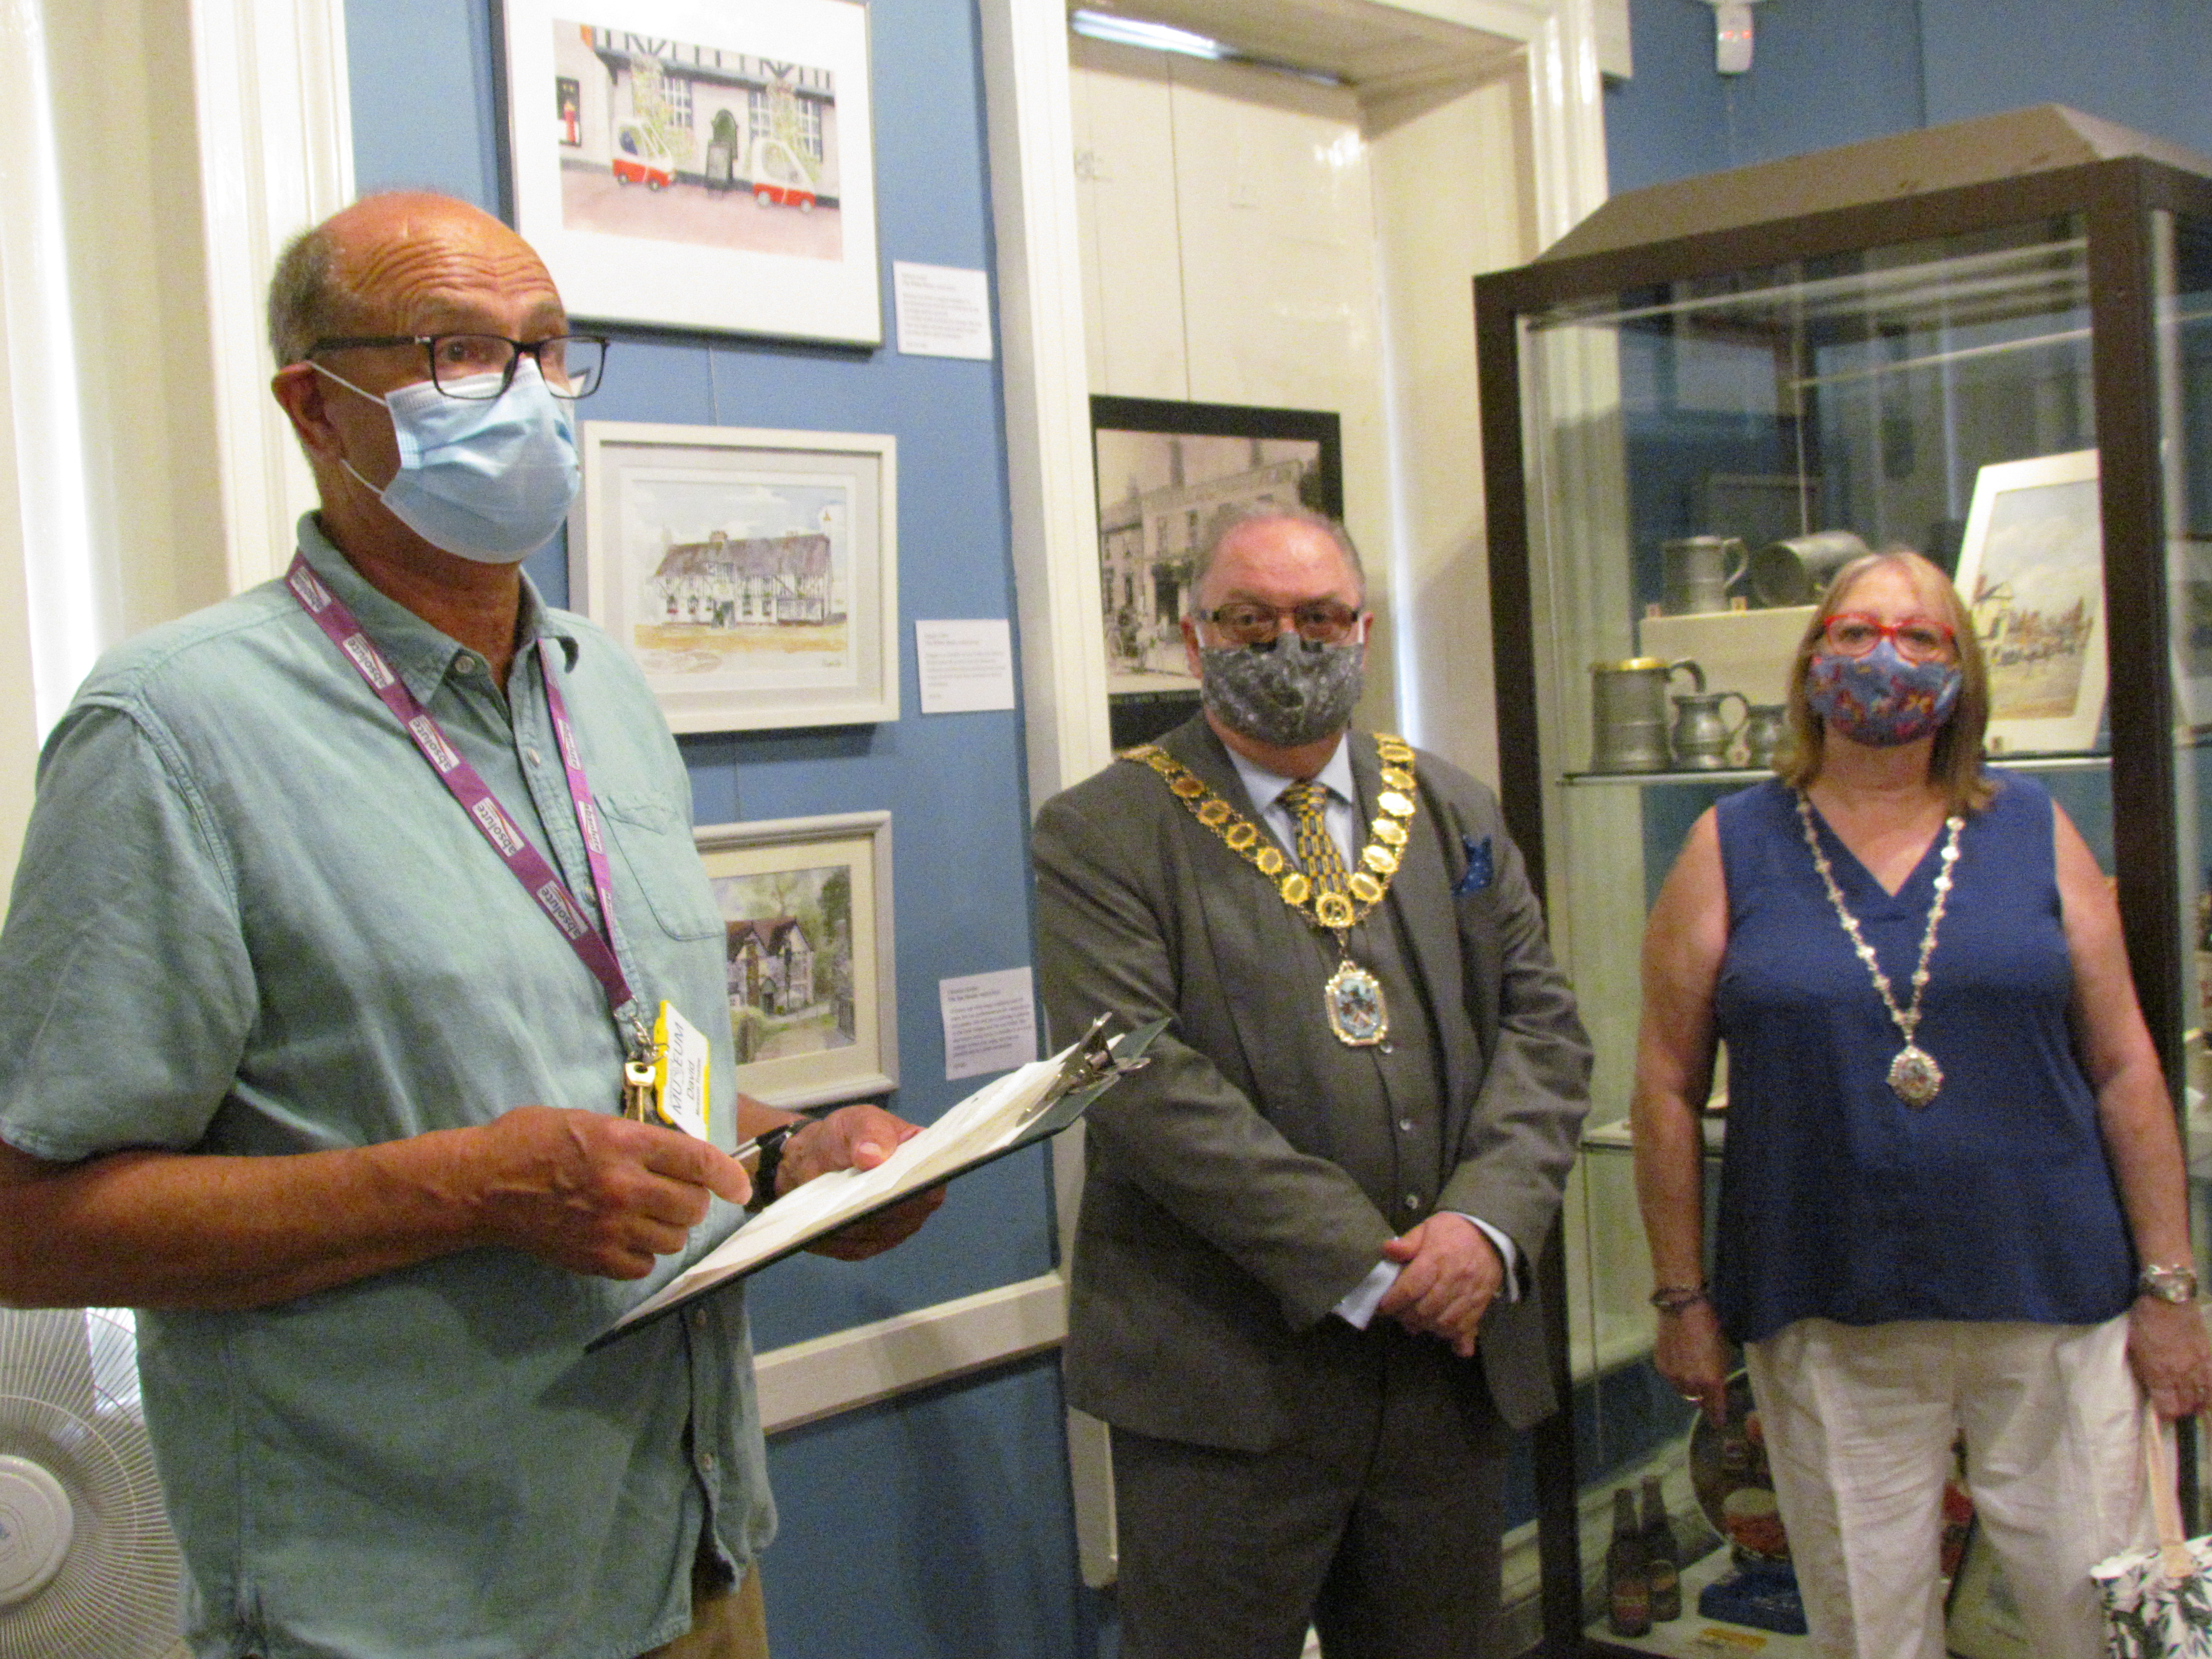 Chair of the Lowewood Museum Trust, David Dent welcomes the Mayor